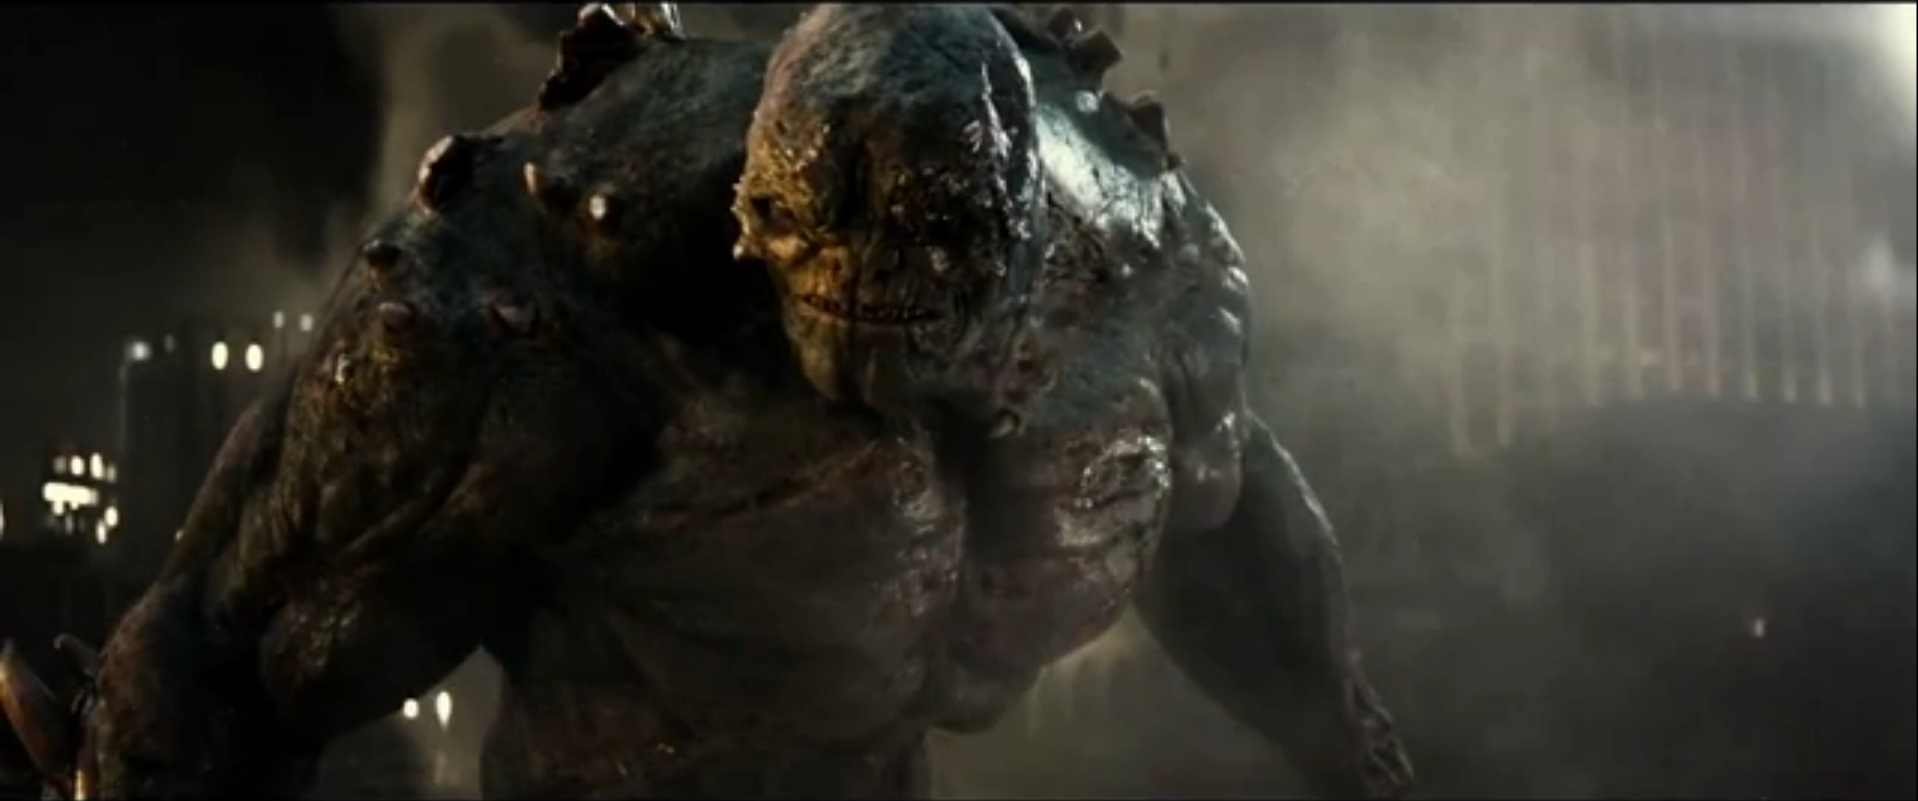 Batman V Superman Who Is Doomsday The Monster At The End Time